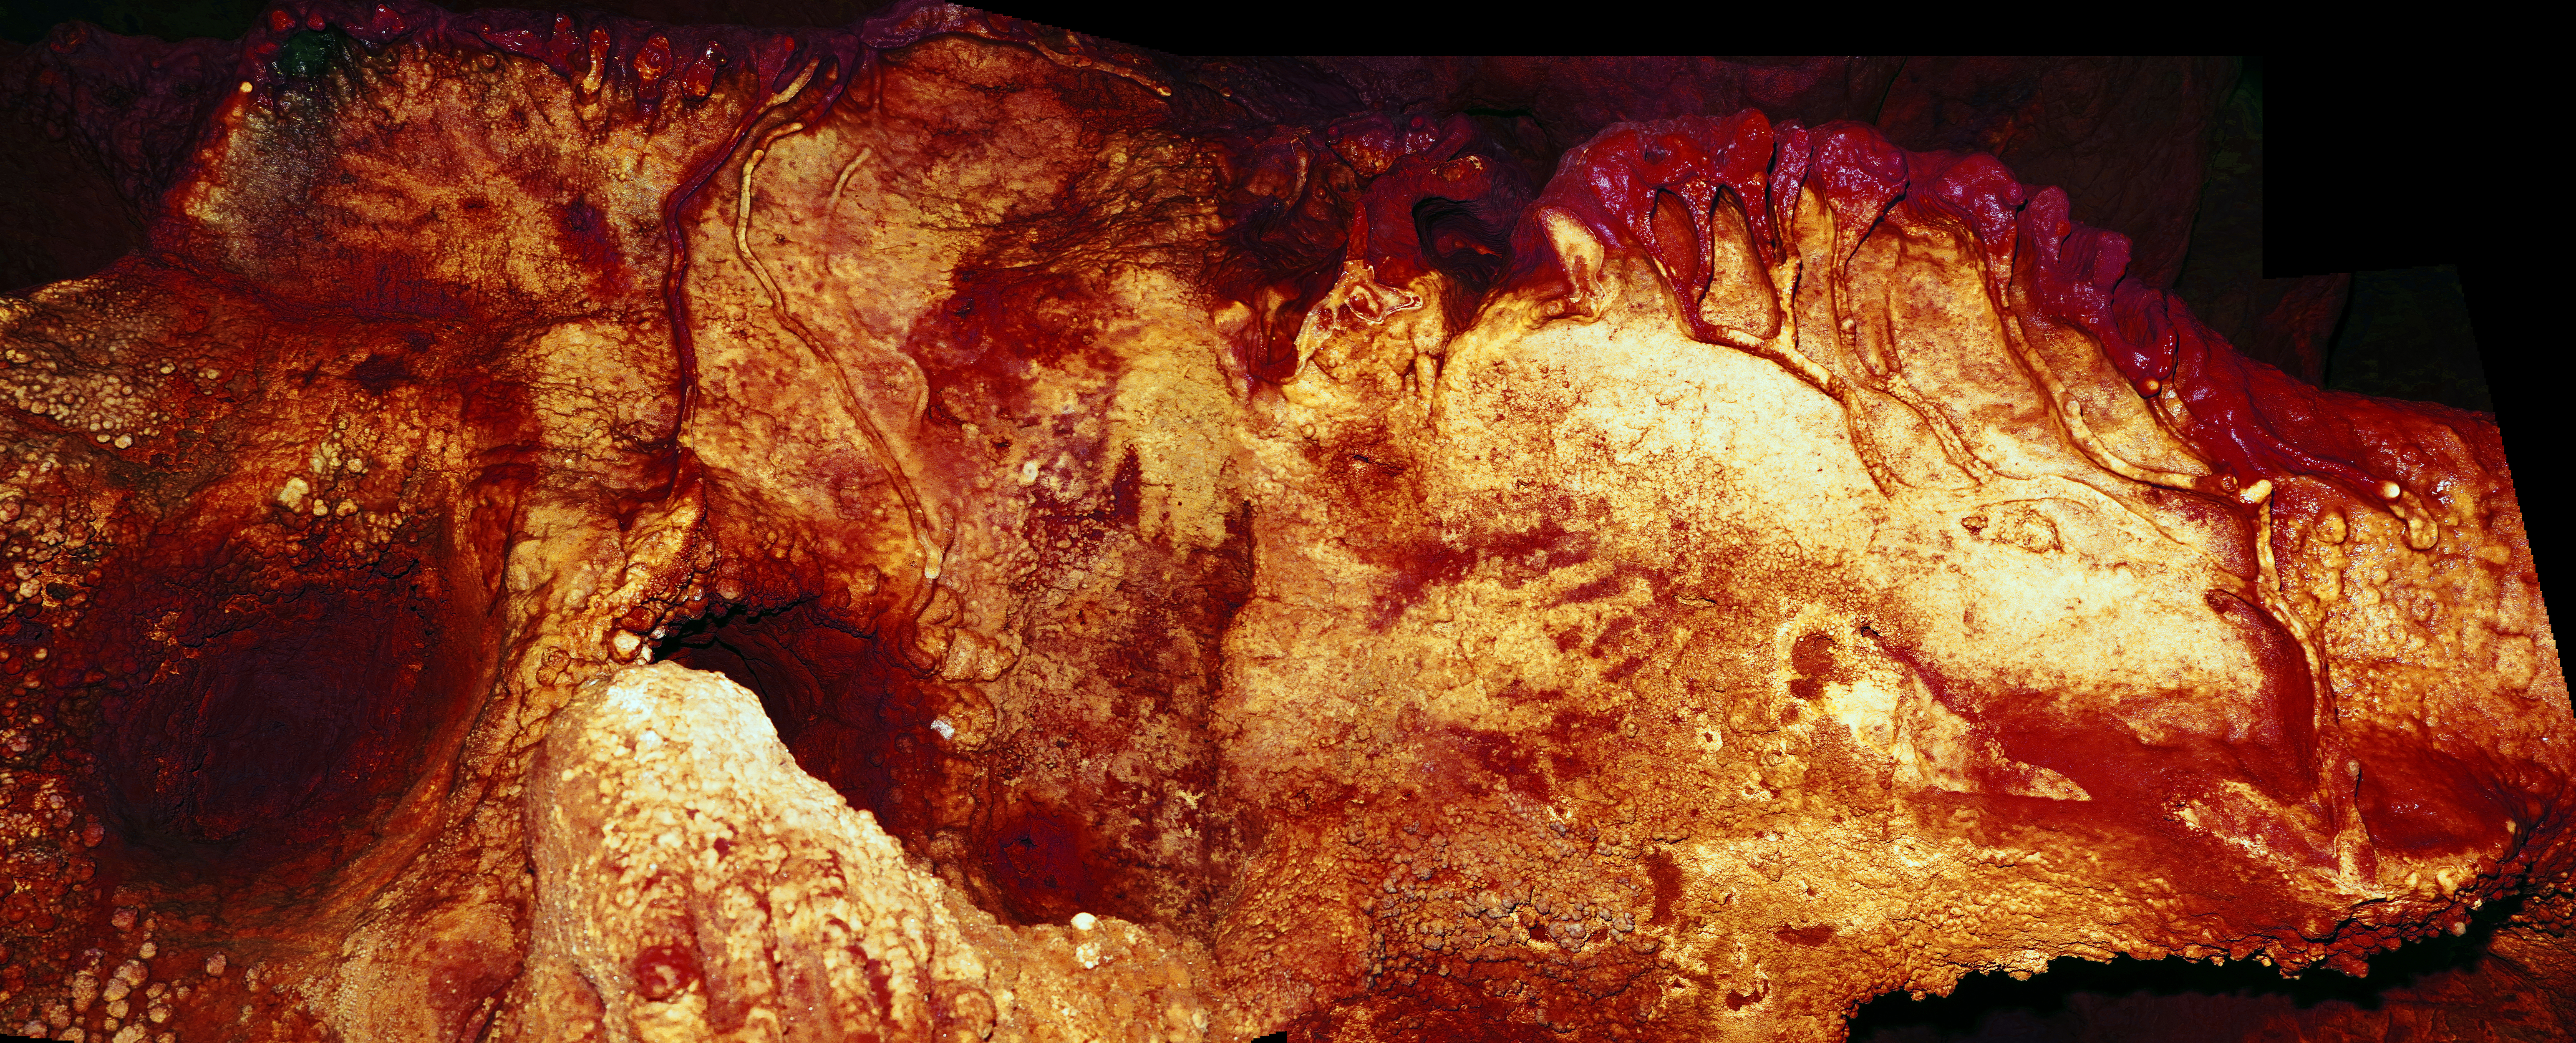 Ancient cave paintings turn out to be by Neanderthals, not modern humans